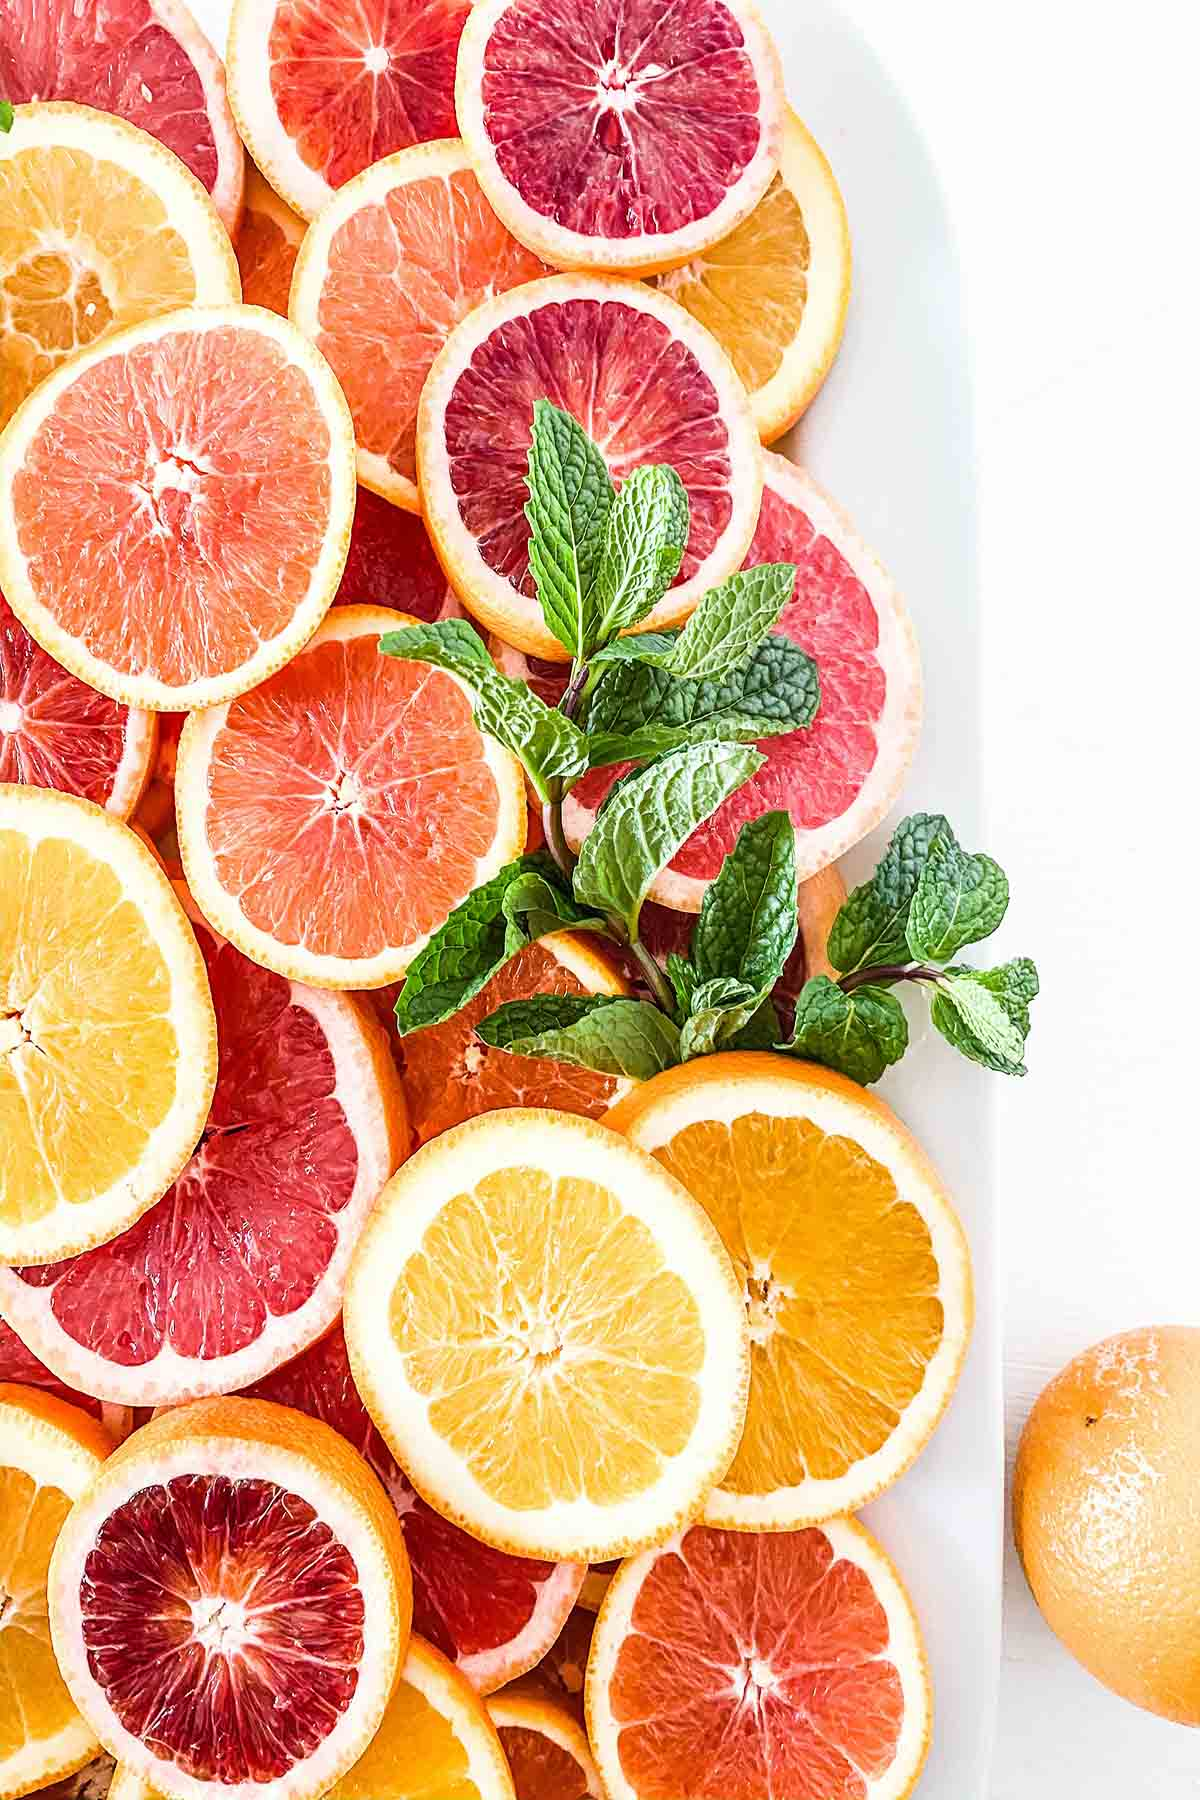 Several slices of citrus fruit on a plater including blood orange, orange, and grapefruit.